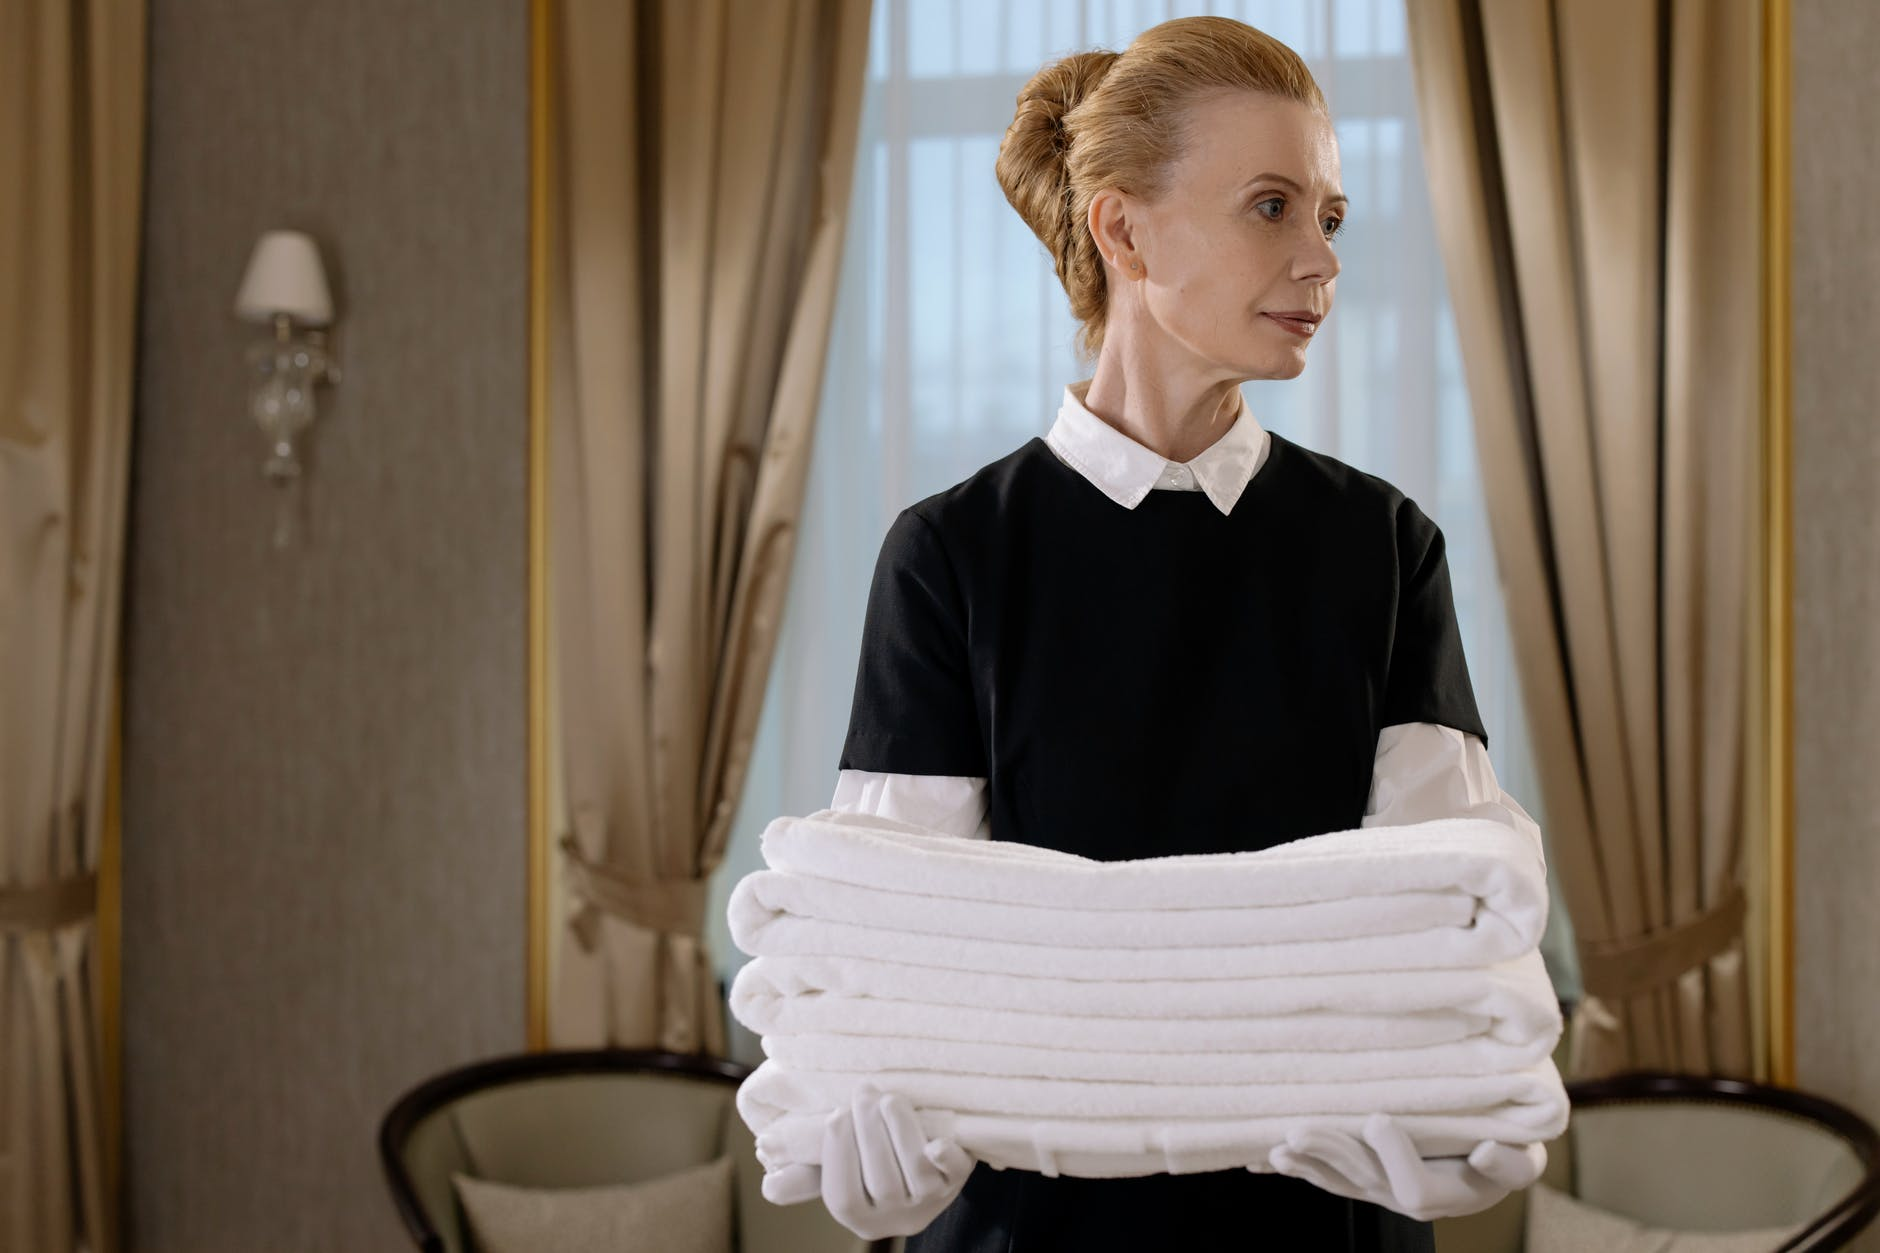 A housemaid carrying a pile of folded towels | Source: Pexels